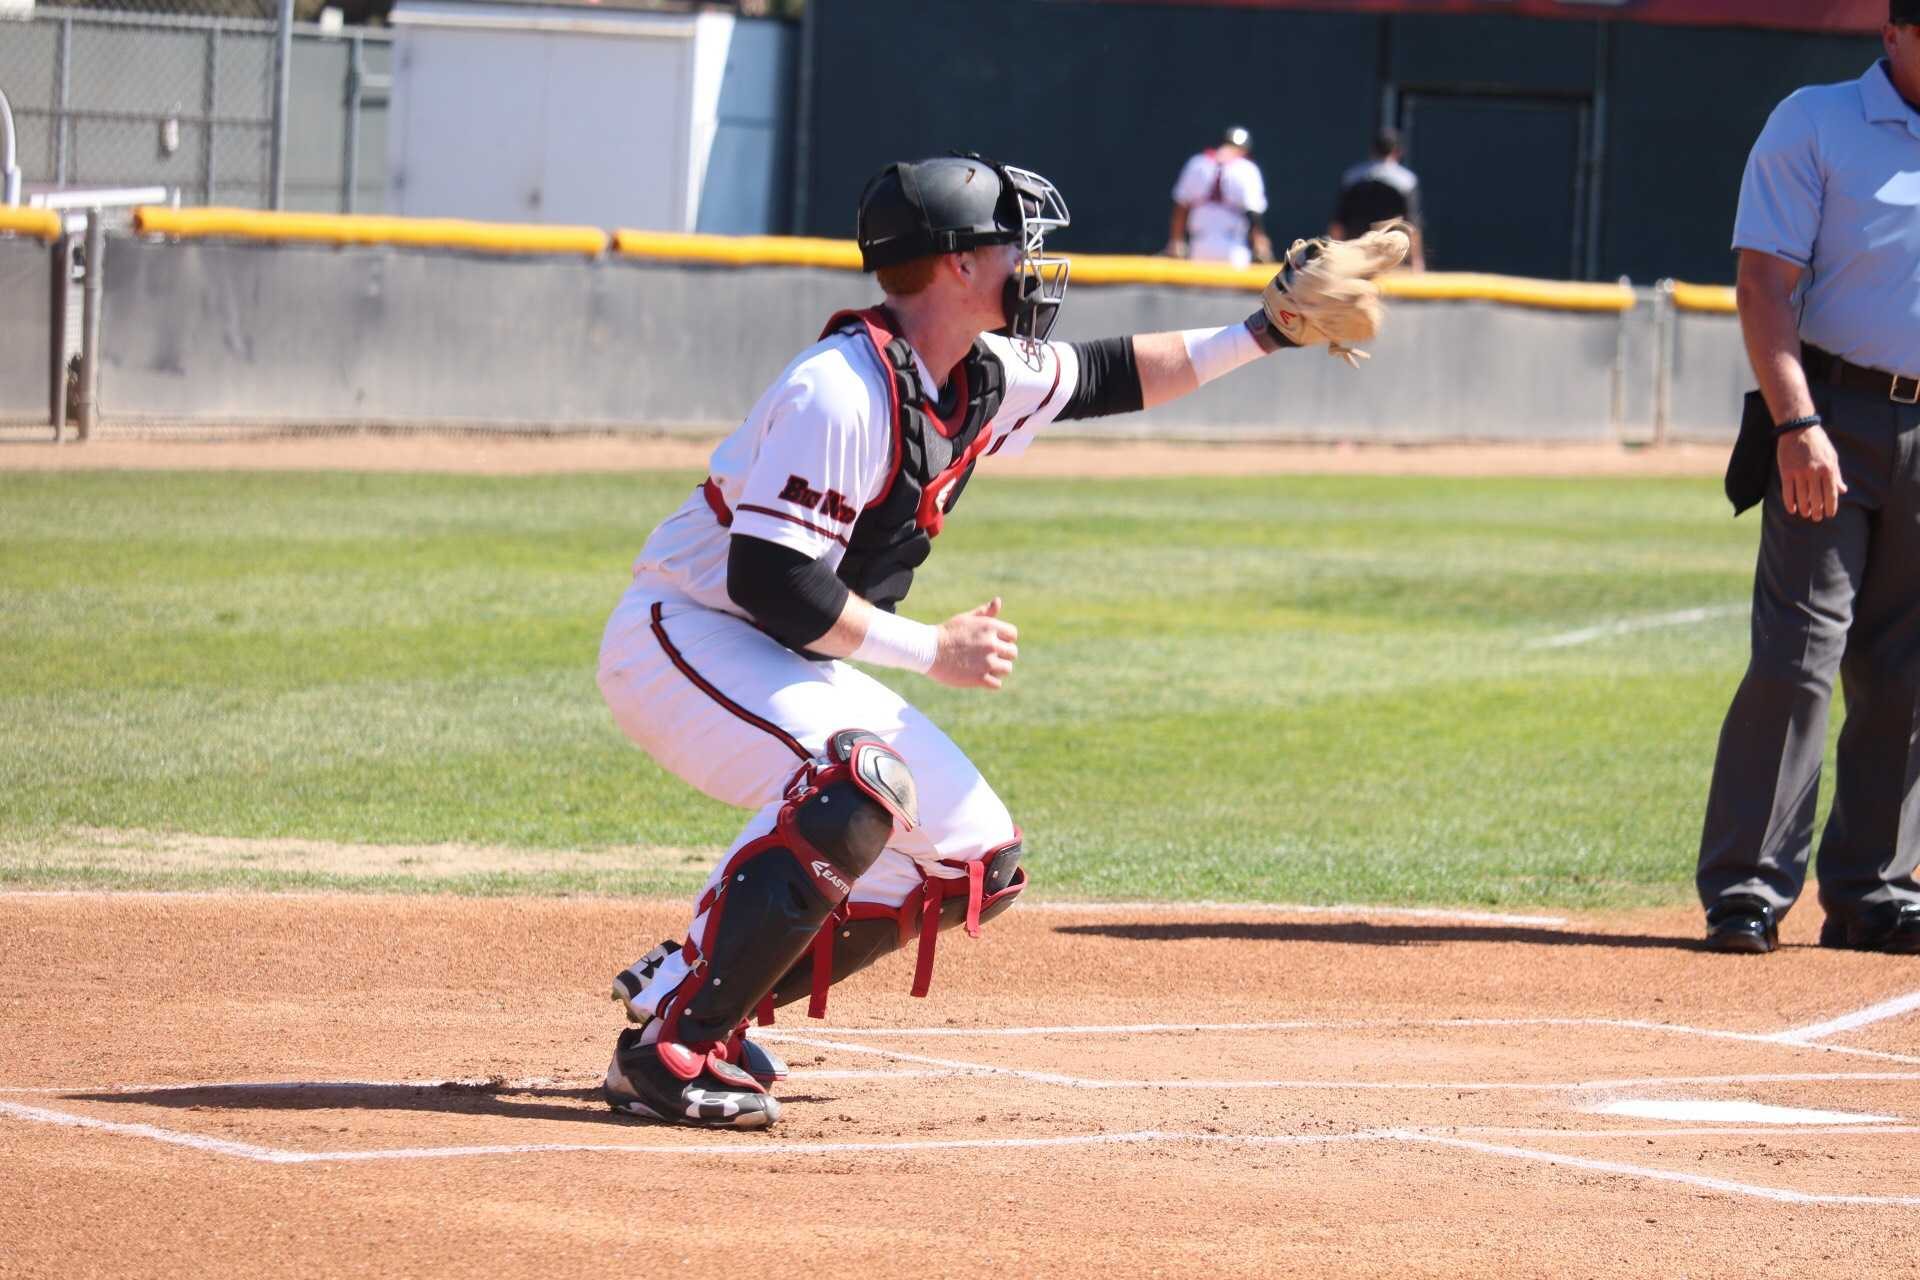 CSUN's junior catcher, Albee Weiss, practices before the game against the Purdue Boilermakers, on Monday, March 13, at the Matador Field. Photo credit: Lauren Valencia/ The Sundial